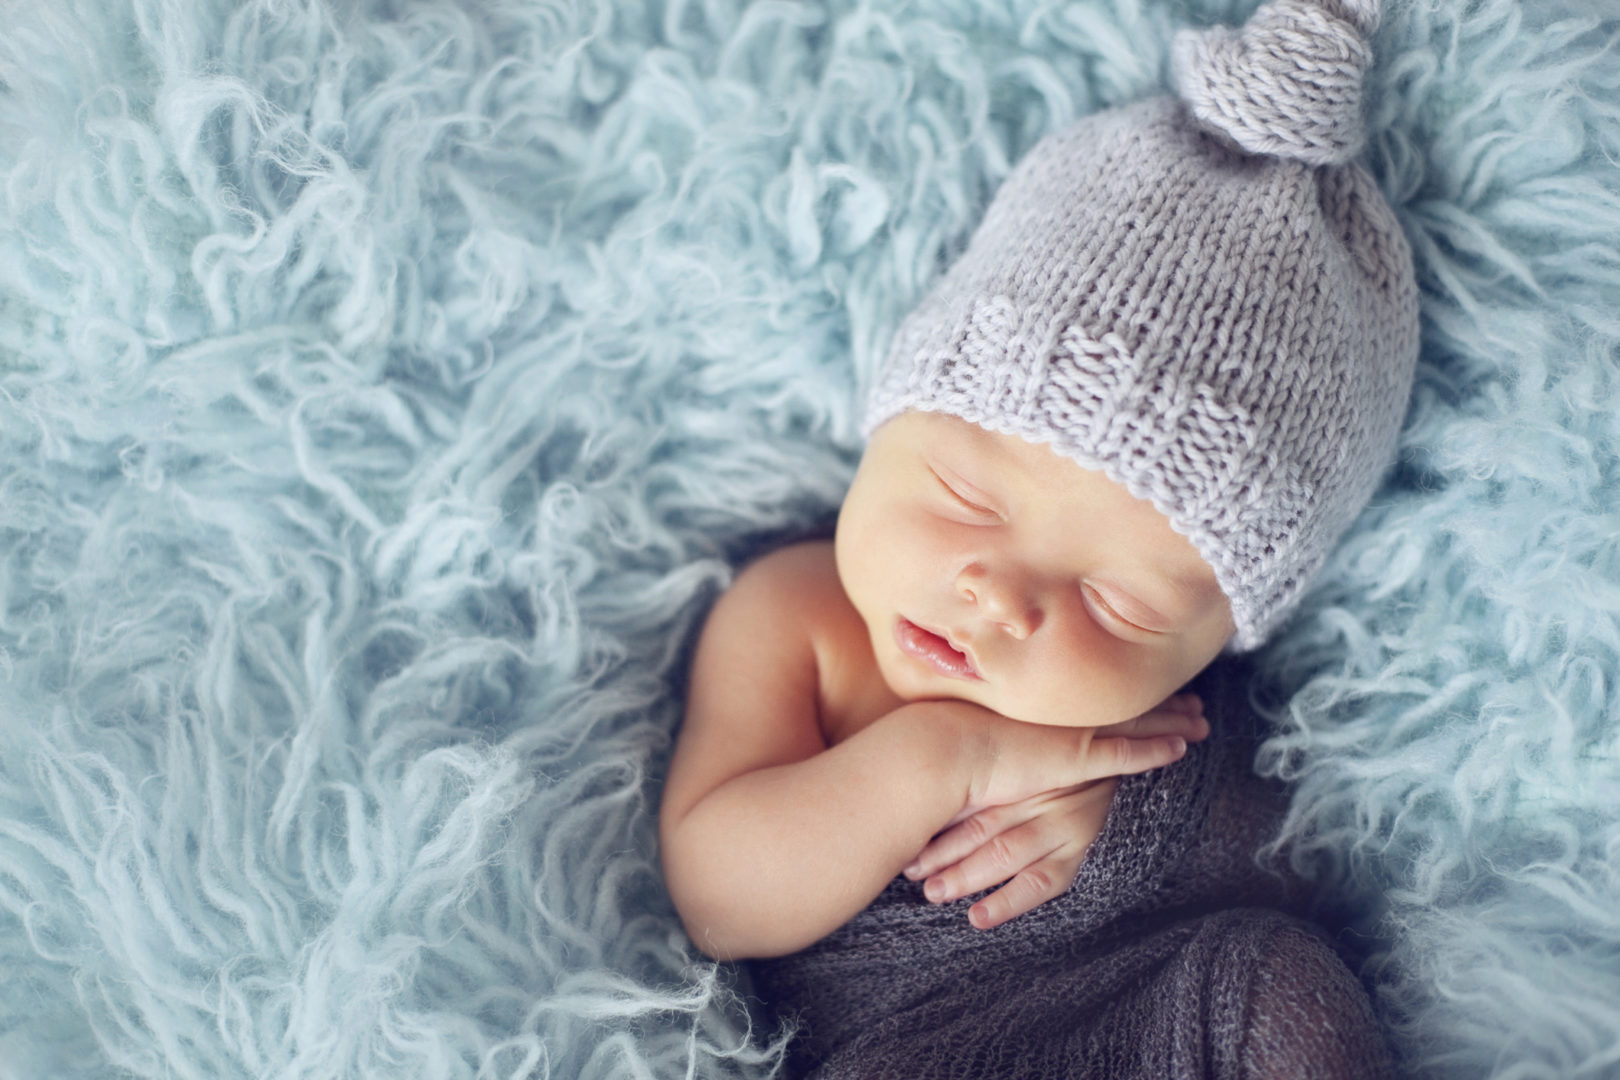 17 must-try newborn photo ideas, plus tips for getting the best shots